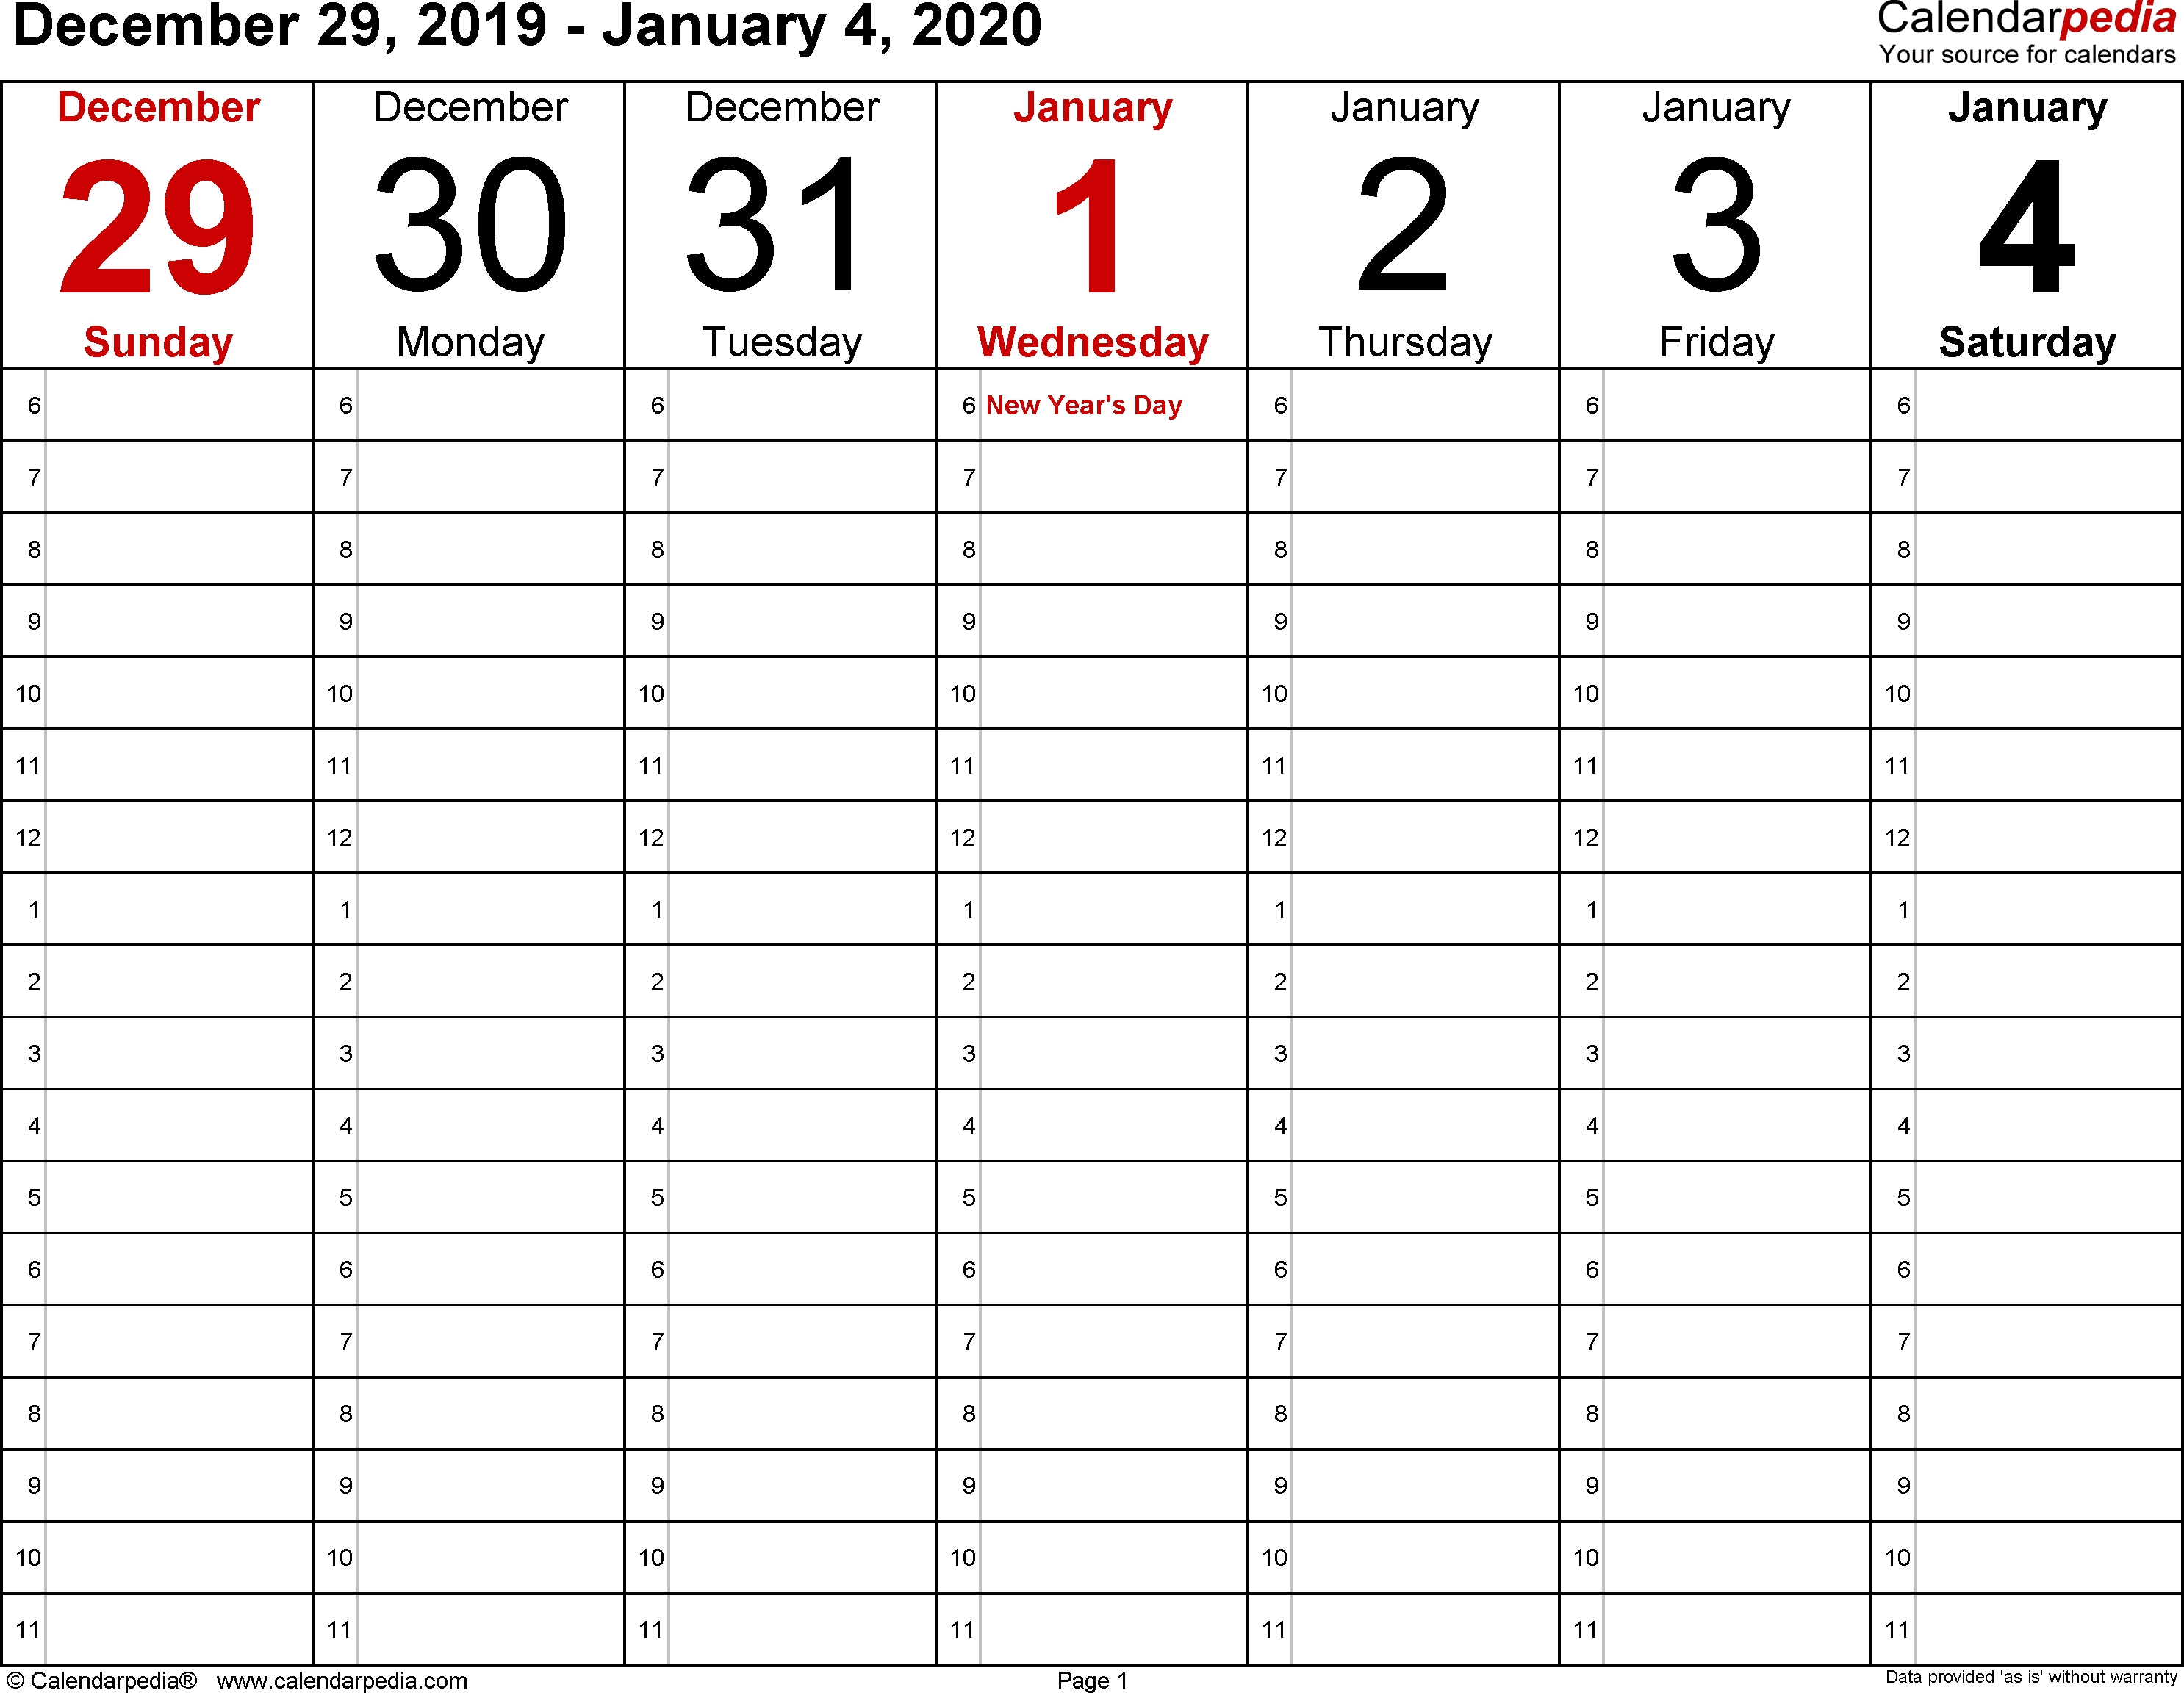 Weekly Calendar 2020 For Word - 12 Free Printable Templates-Printable Monthly 5 Day Calendar 2020